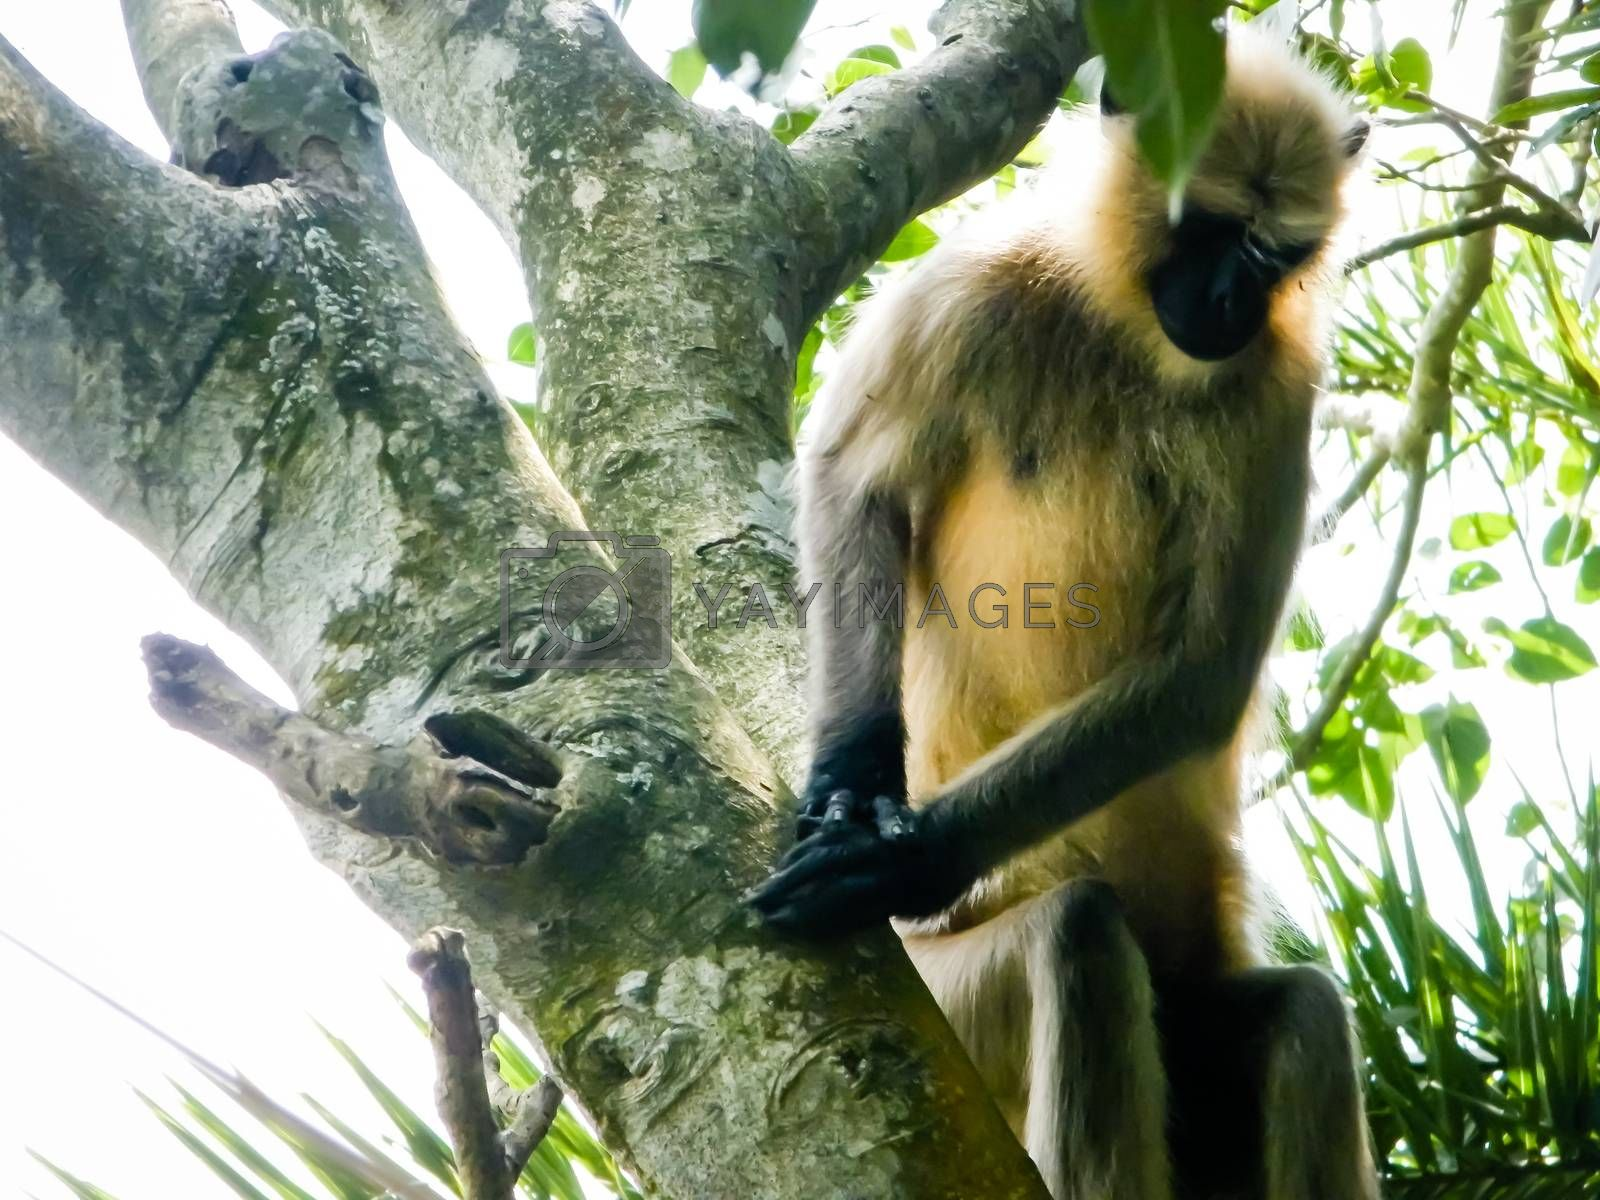 Common indian Monkey on tree branch in Bhadra wildlife sanctuary karnataka India. Photography on summer day in nature green background.